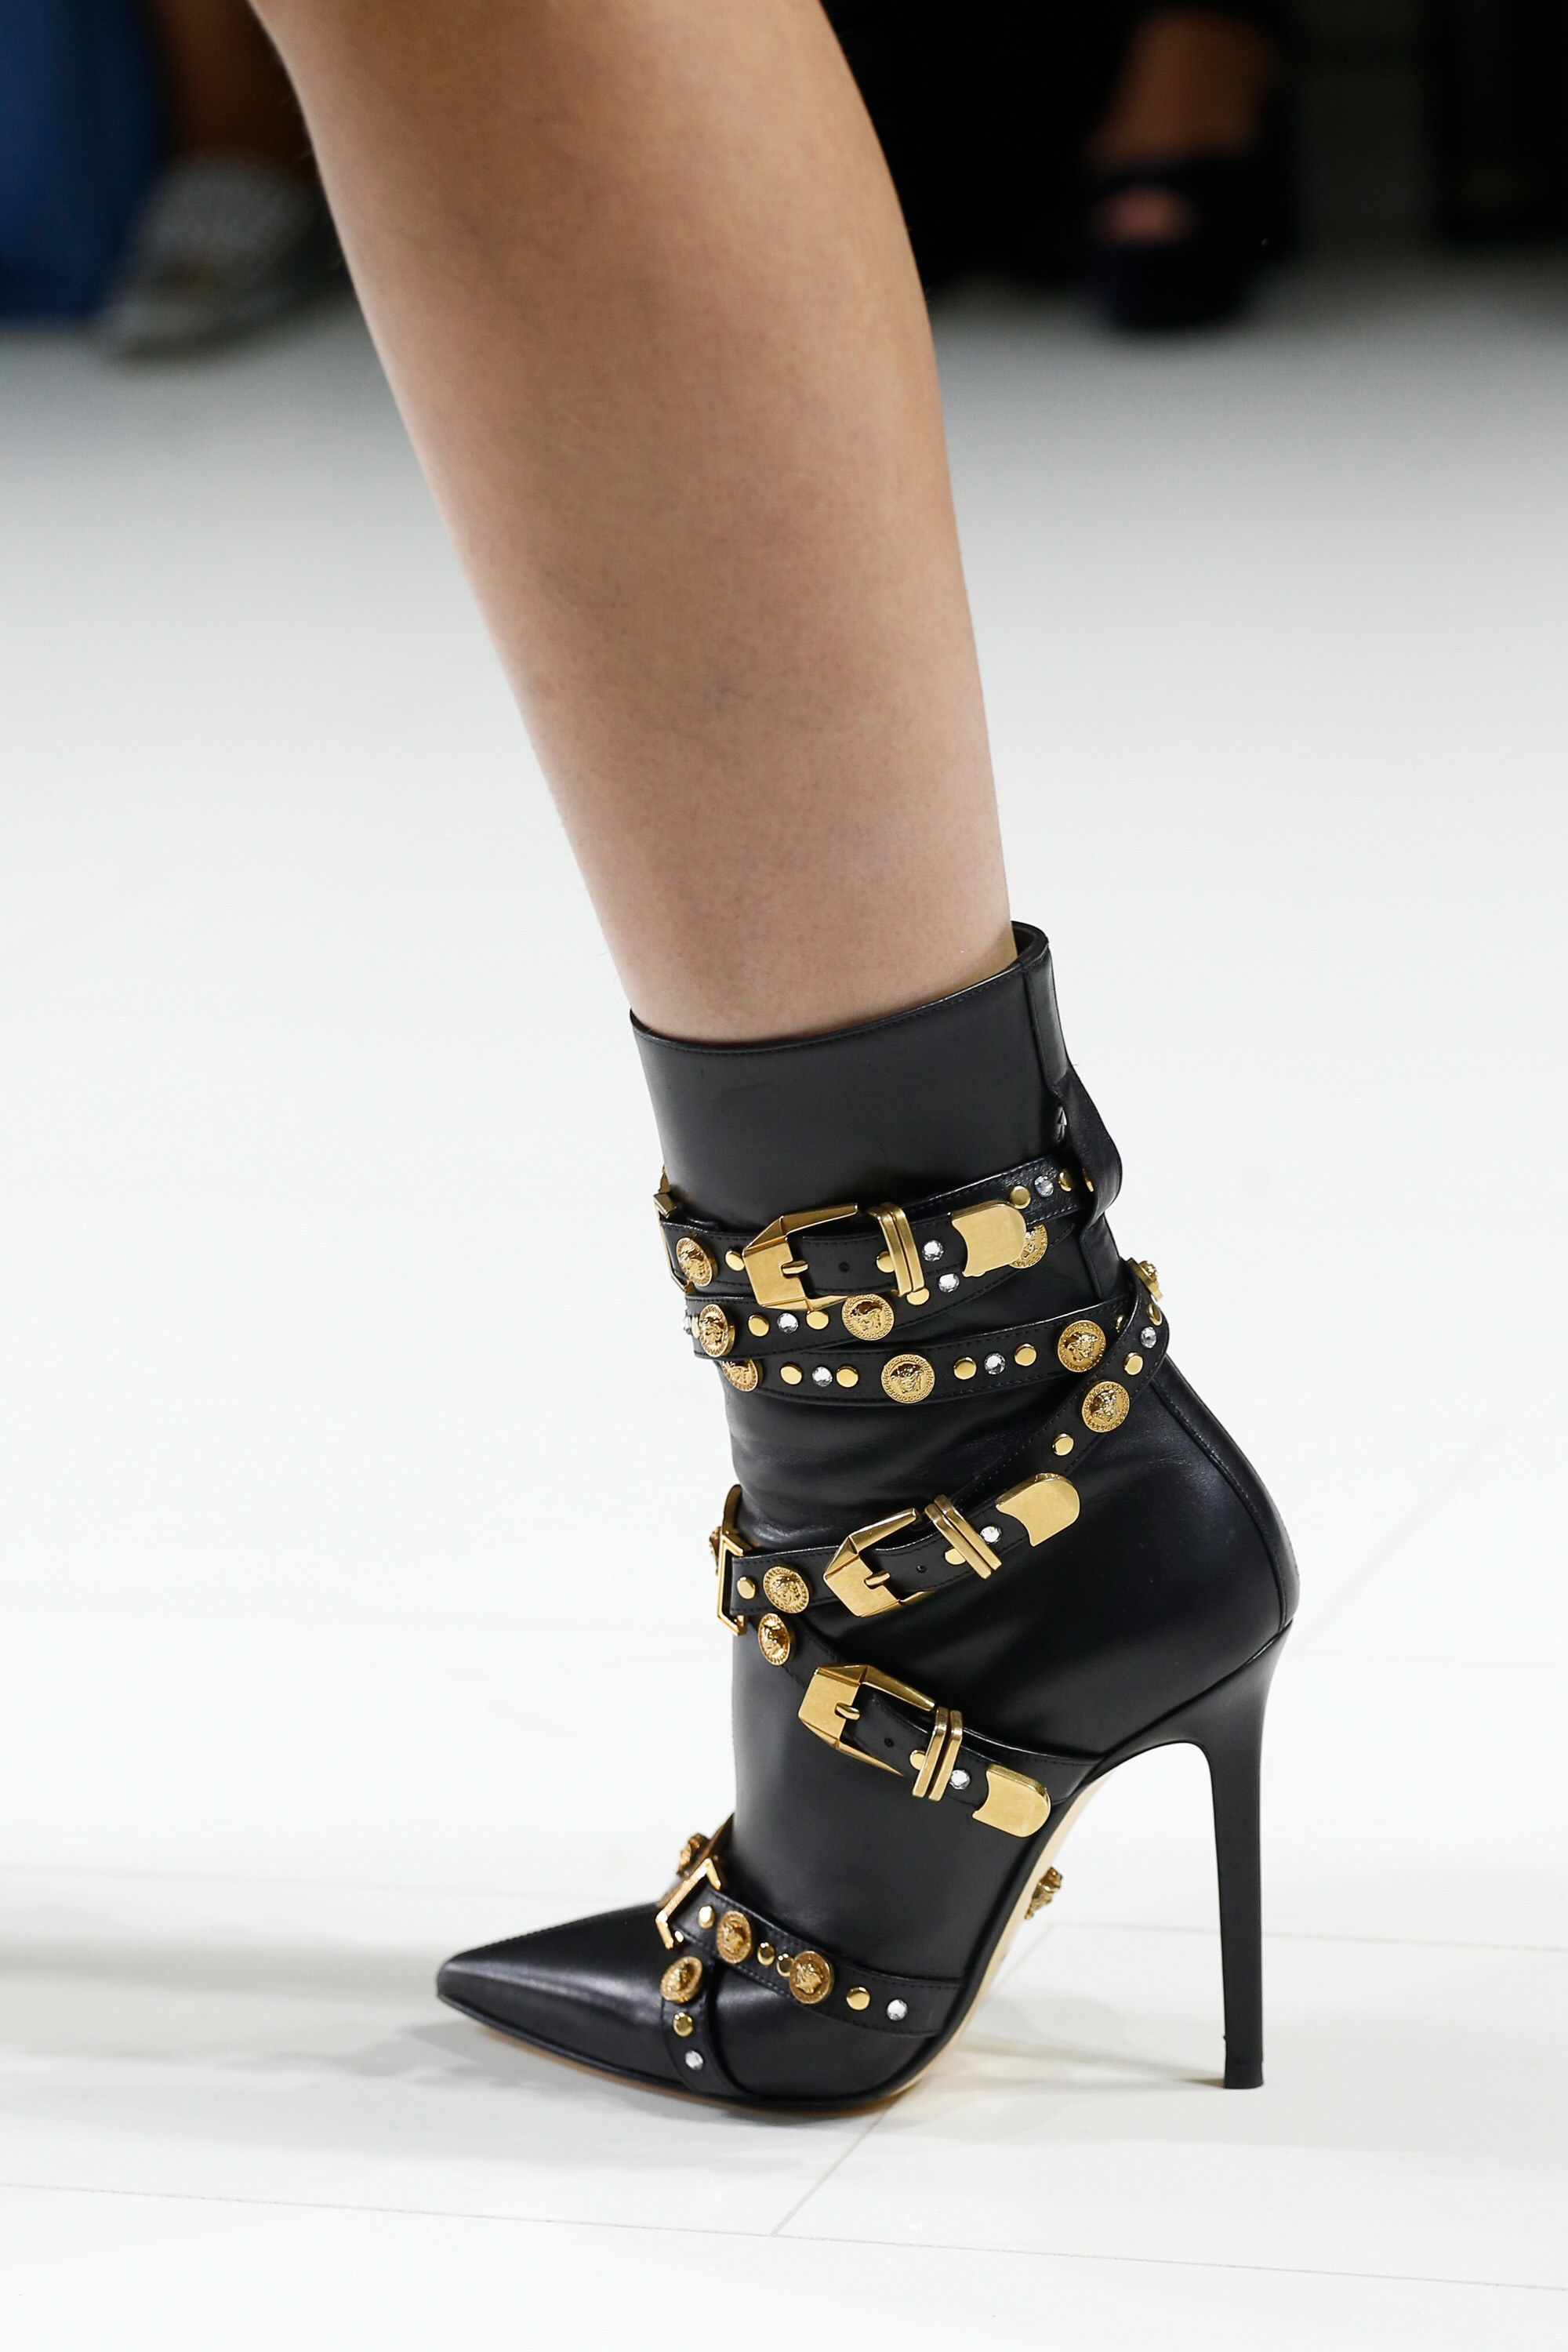 0d429028423d Versace Top 10 Shoes Milan Fashion Week Mfw